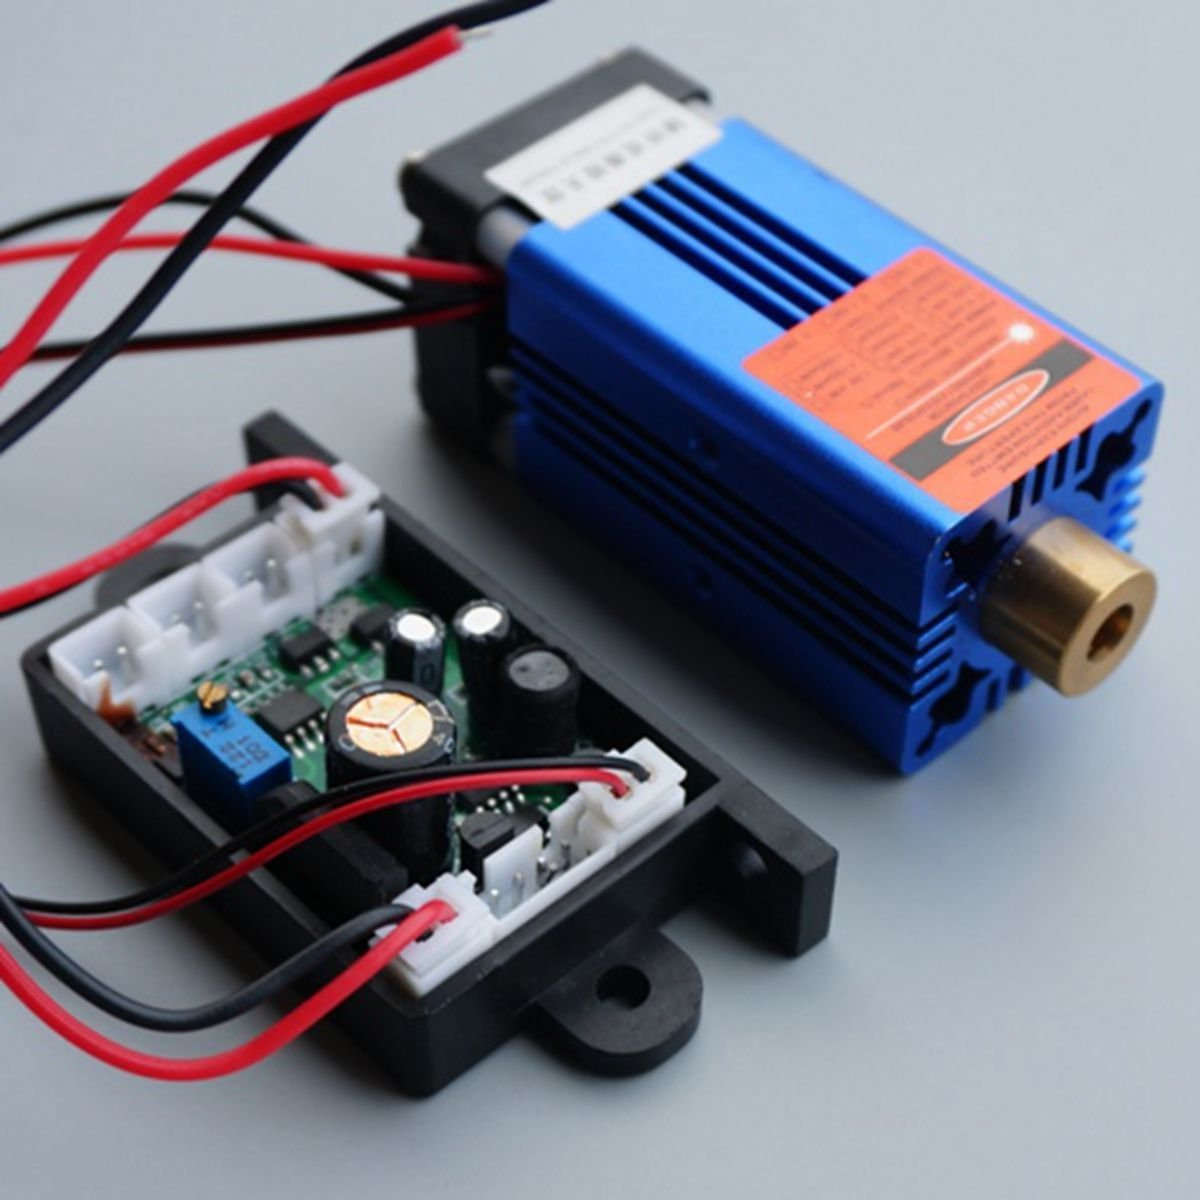 1000mw Industrial/Lab 850nm 1W Infrared IR Dot Laser Module 12V Burning Matches with TTL Fan Cooling & Long Time Working